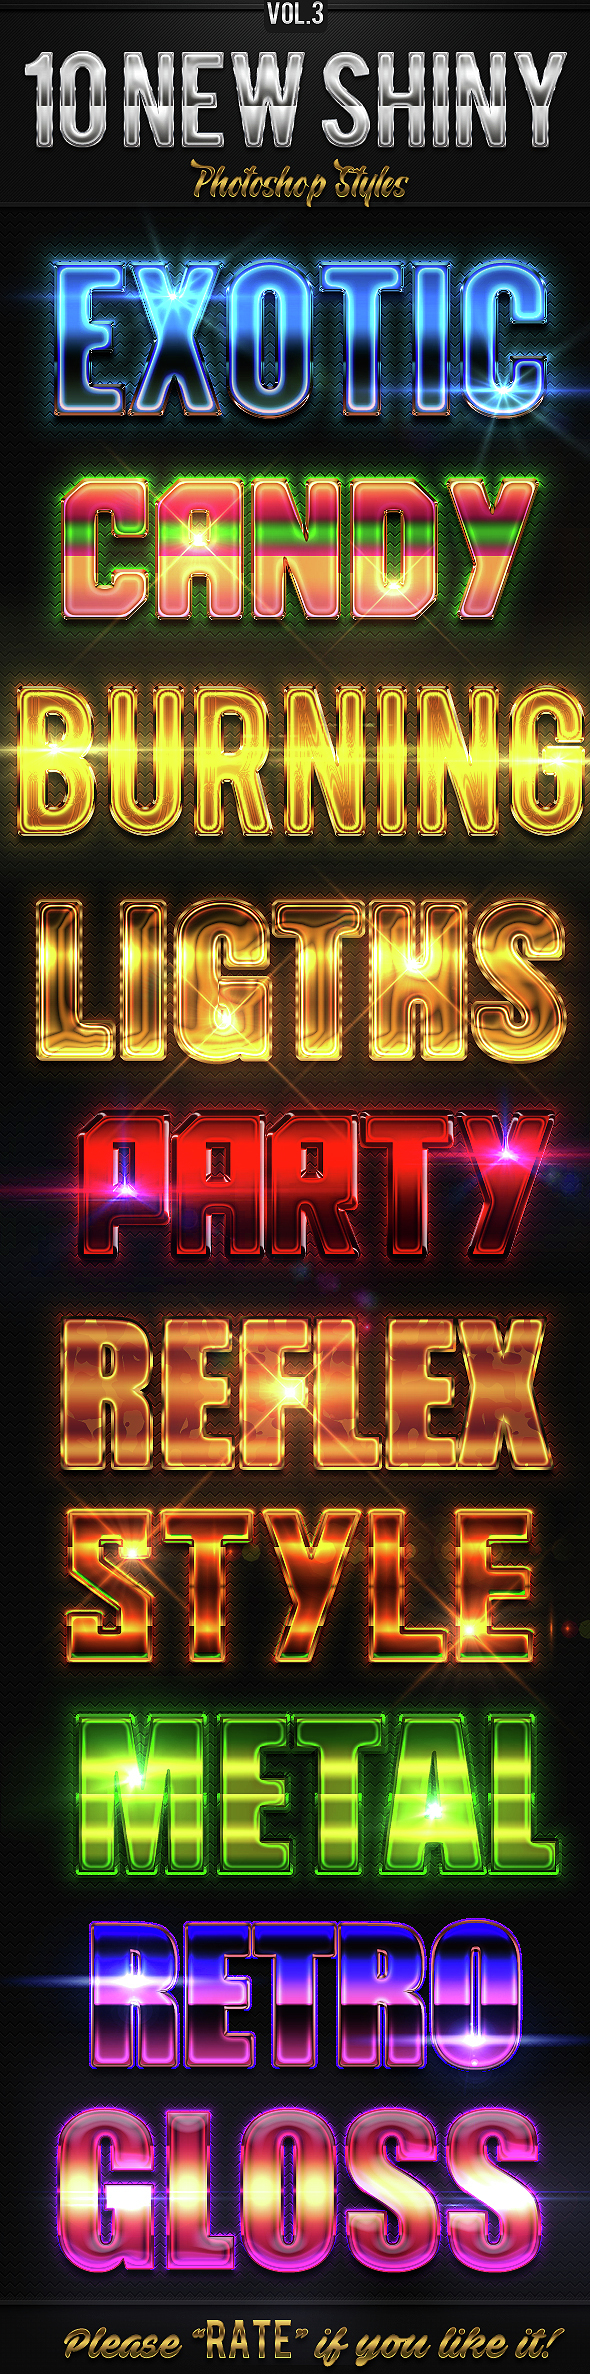 10 New Shiny Photoshop Styles Vol.3 - Text Effects Styles